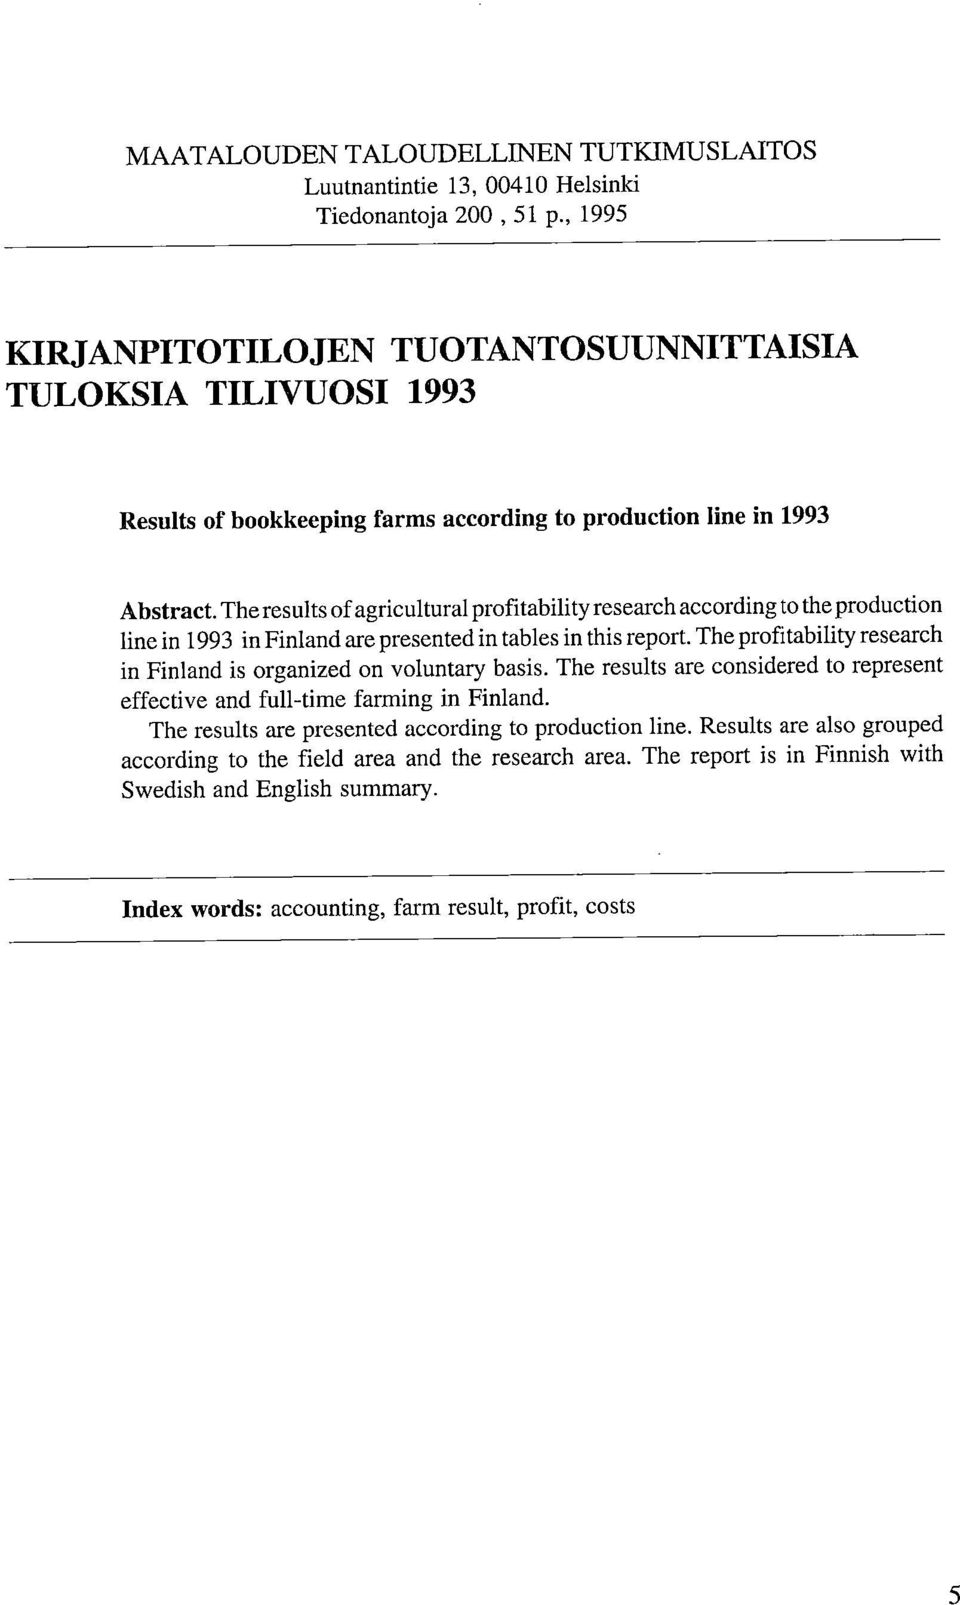 The results of agricultural profitability research according to the production line in 1993 in Finland are presented in tables in this report.